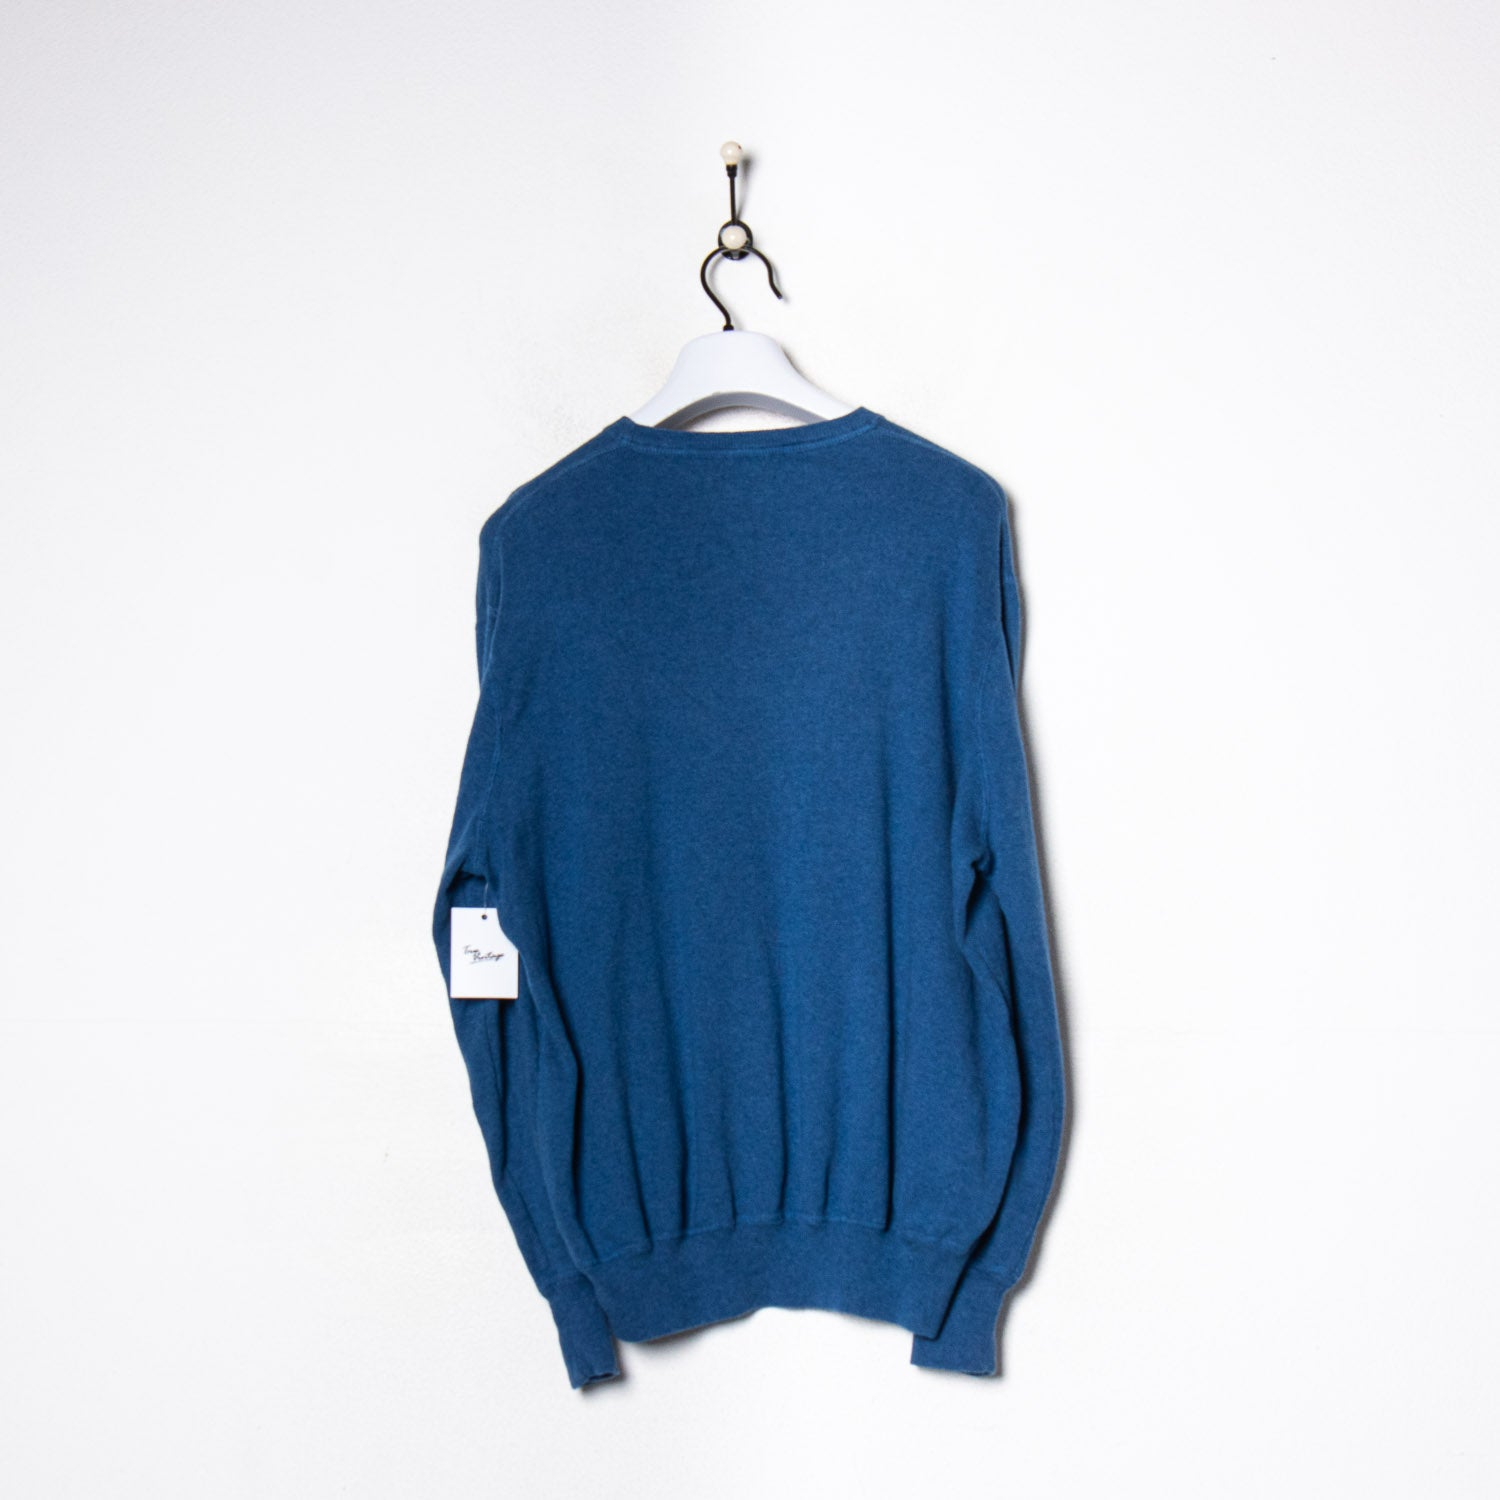 Fred Perry Knitted Sweatshirt Navy Large